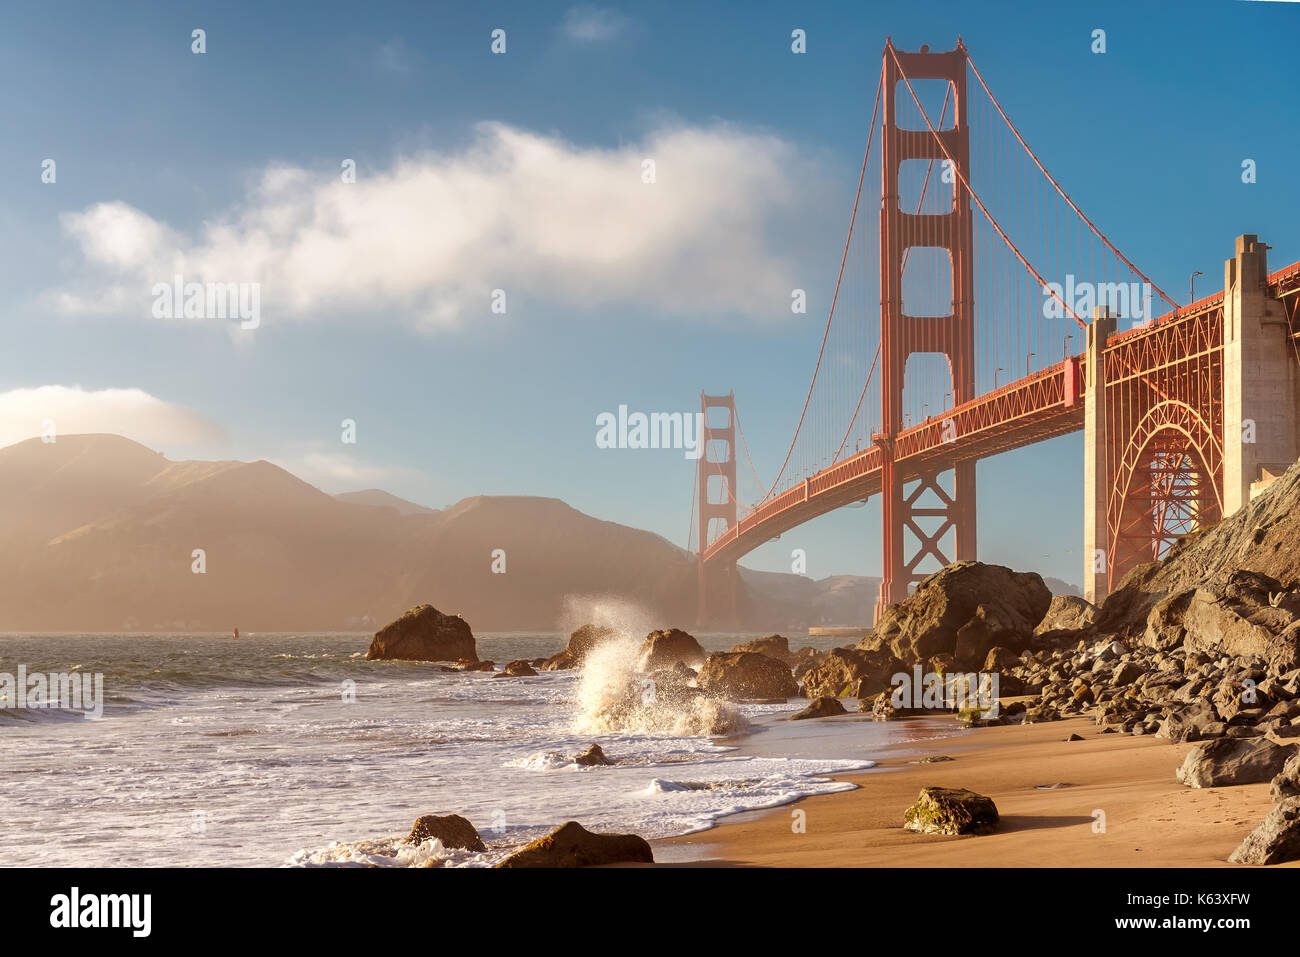 Golden Gate Bridge from the beach in San Francisco at sunset. - Stock Image